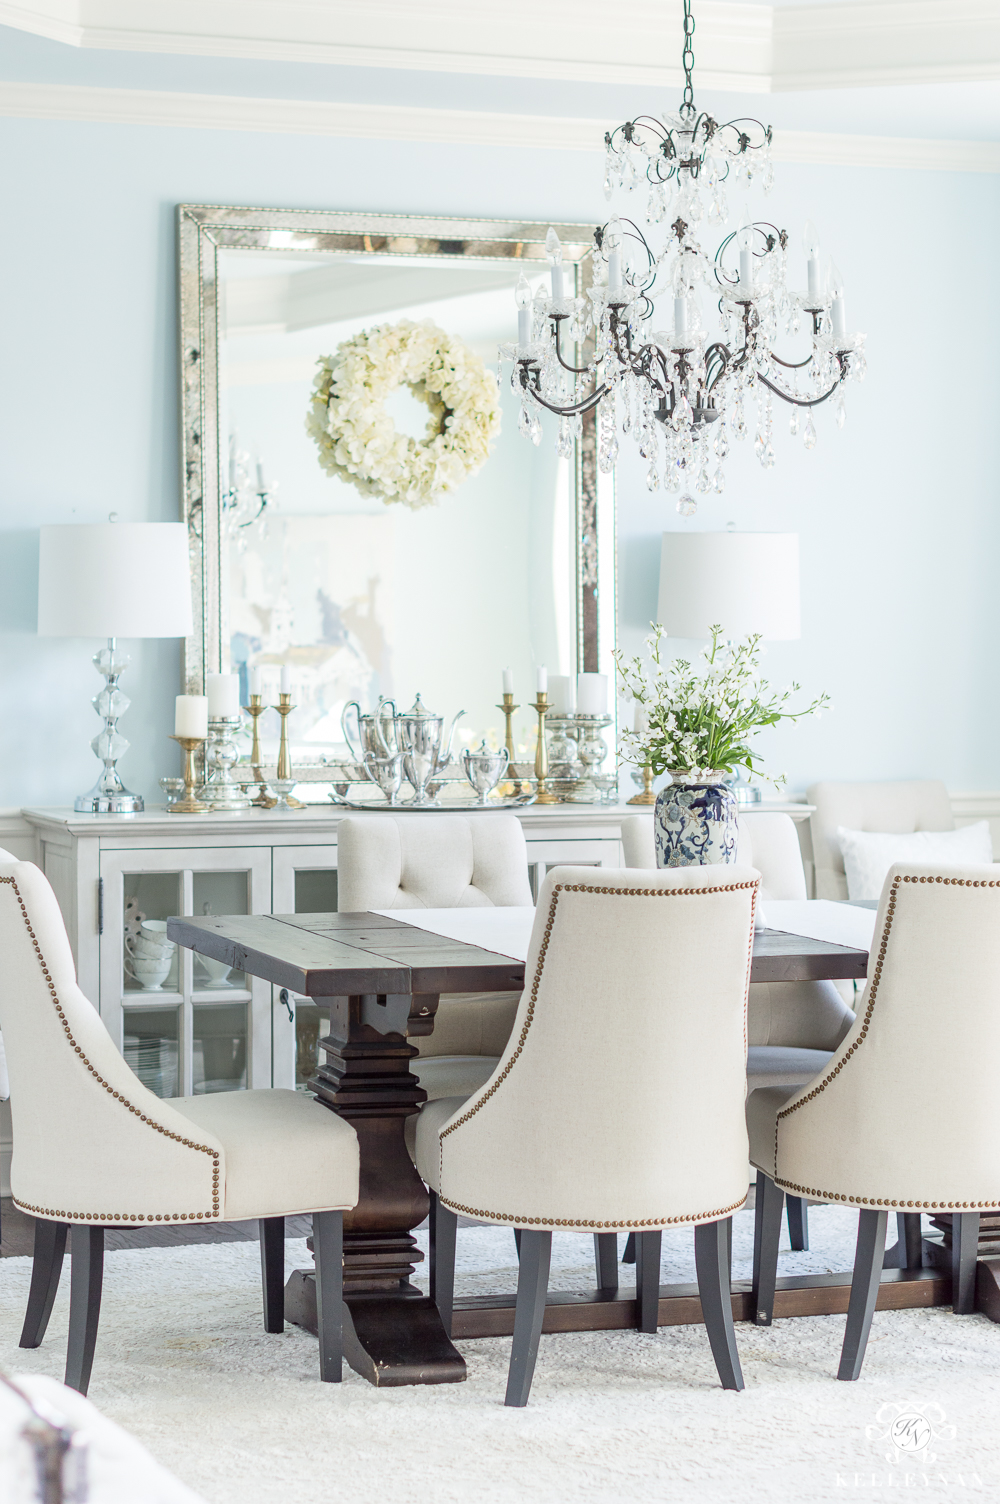 Elegant Dining Room with Sherwin Williams Blue Paint and Restoration Hardware Furniture